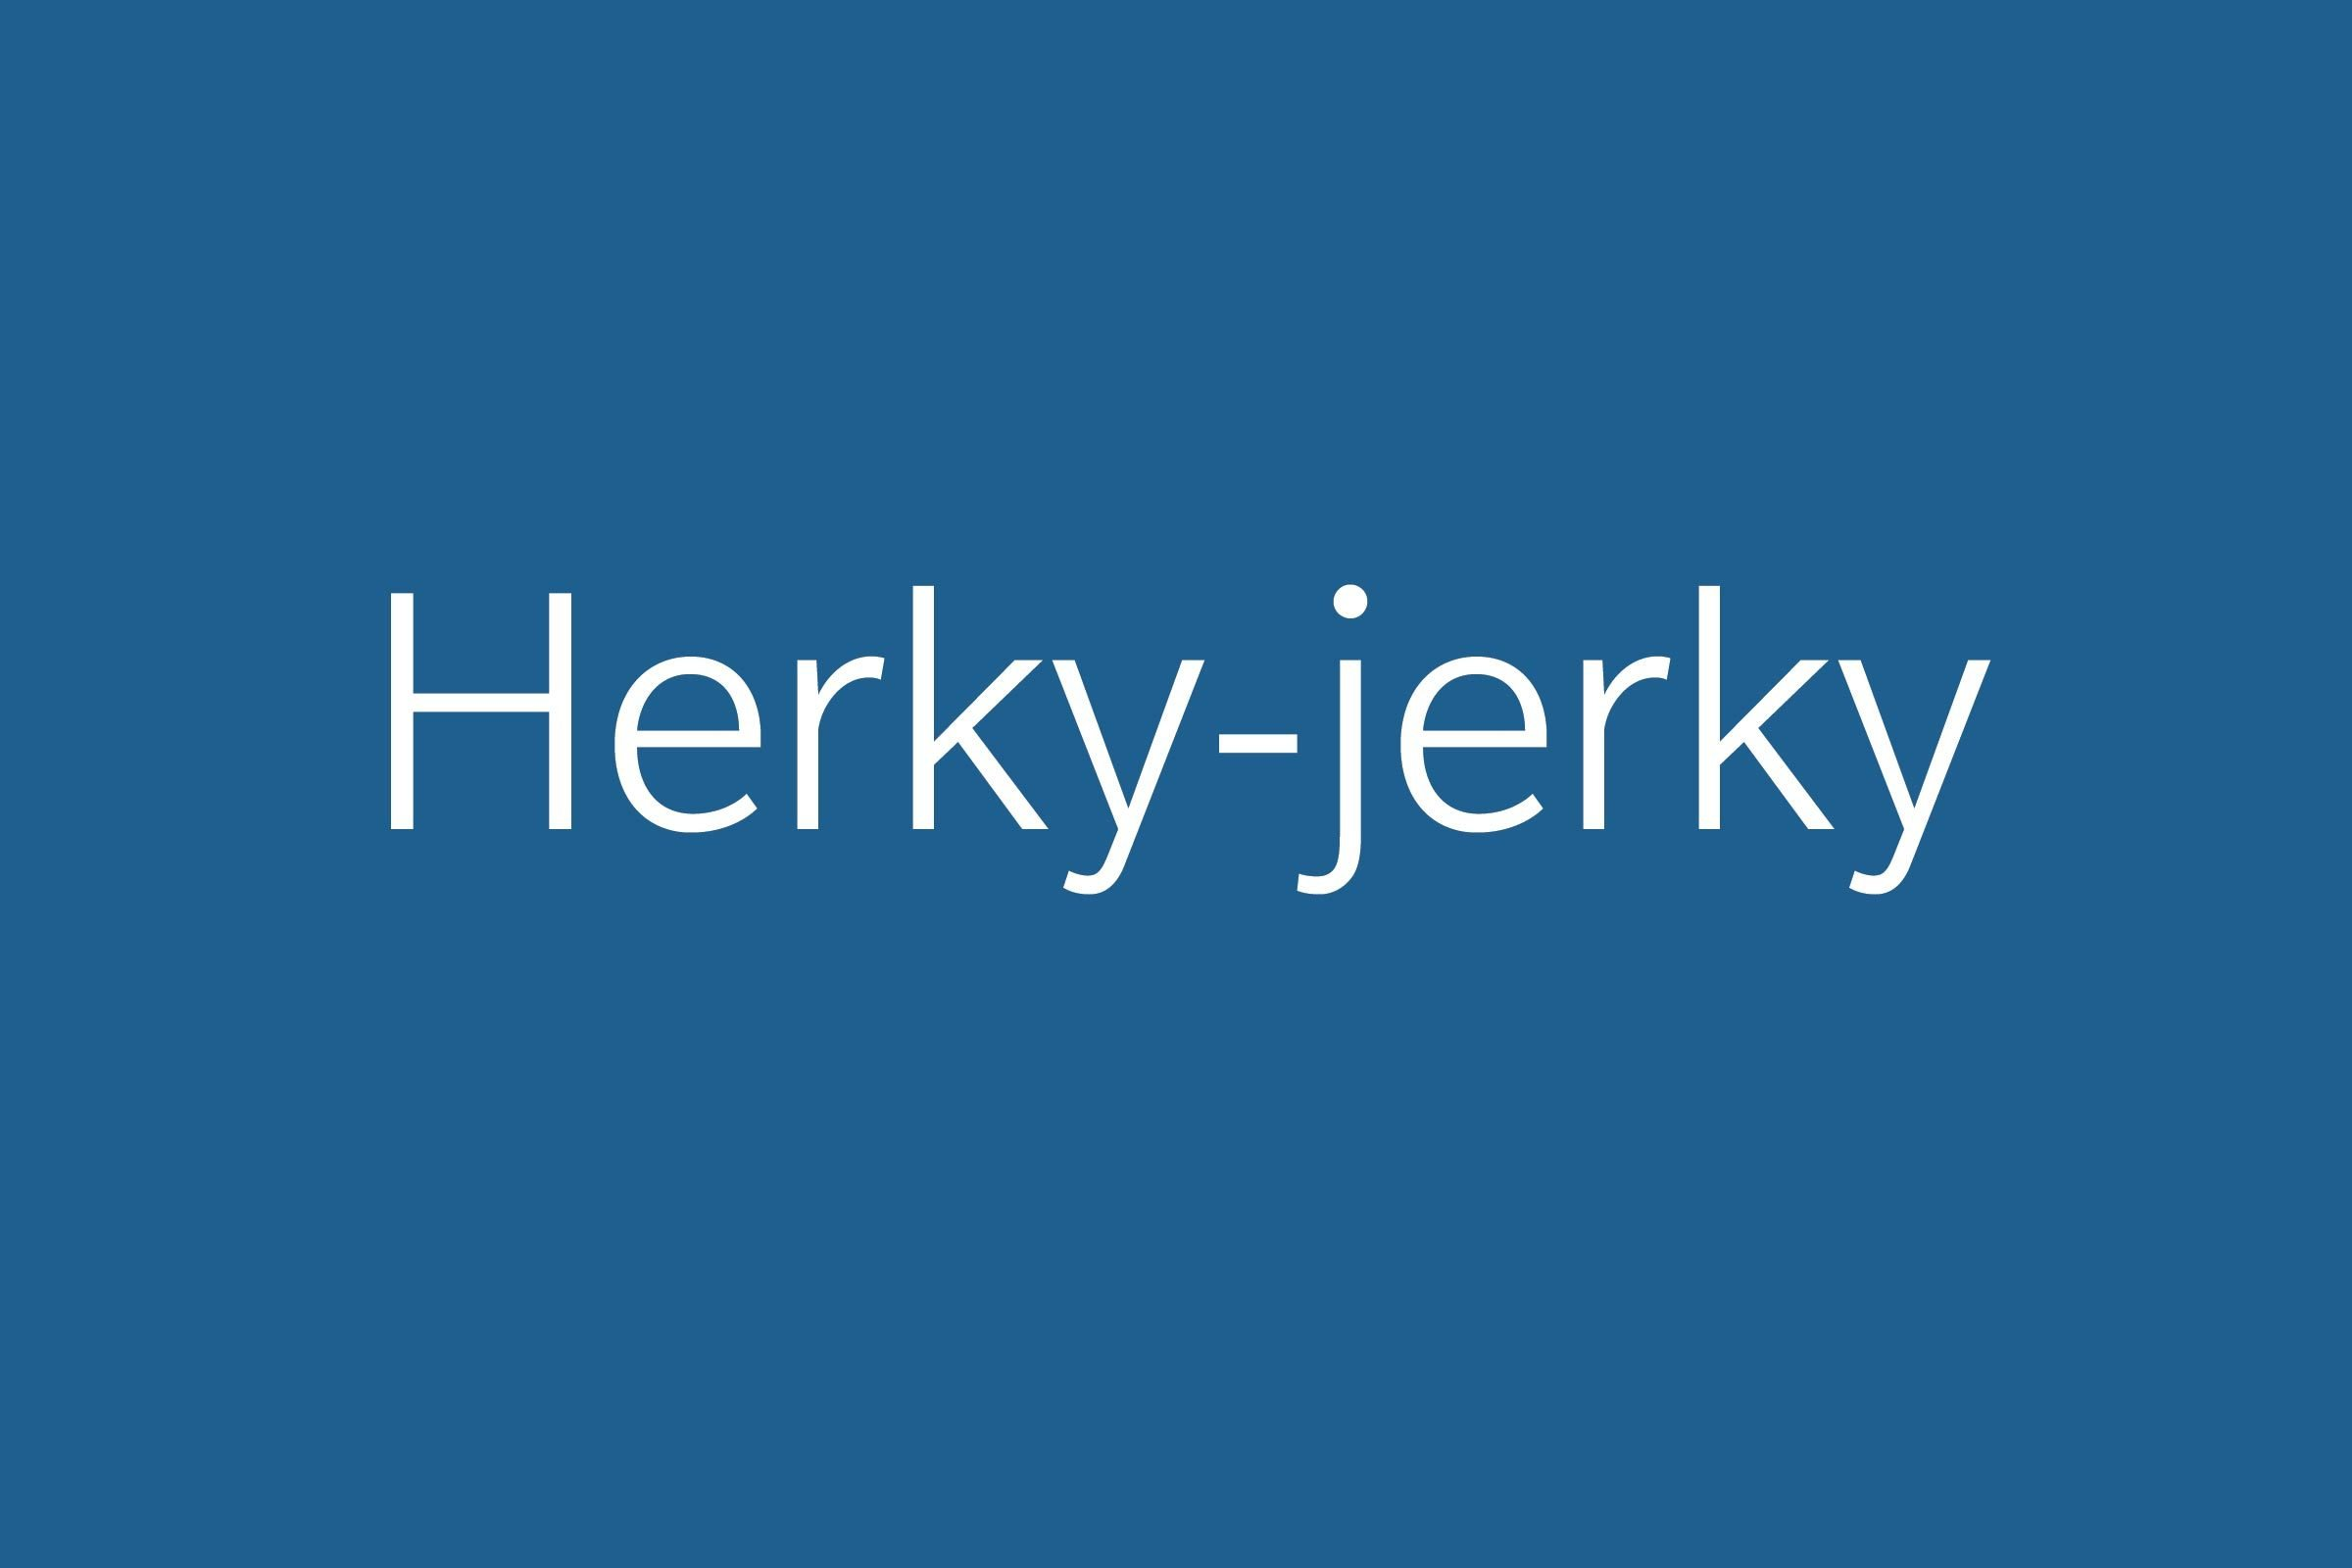 herky-jerky funny word funny words to say